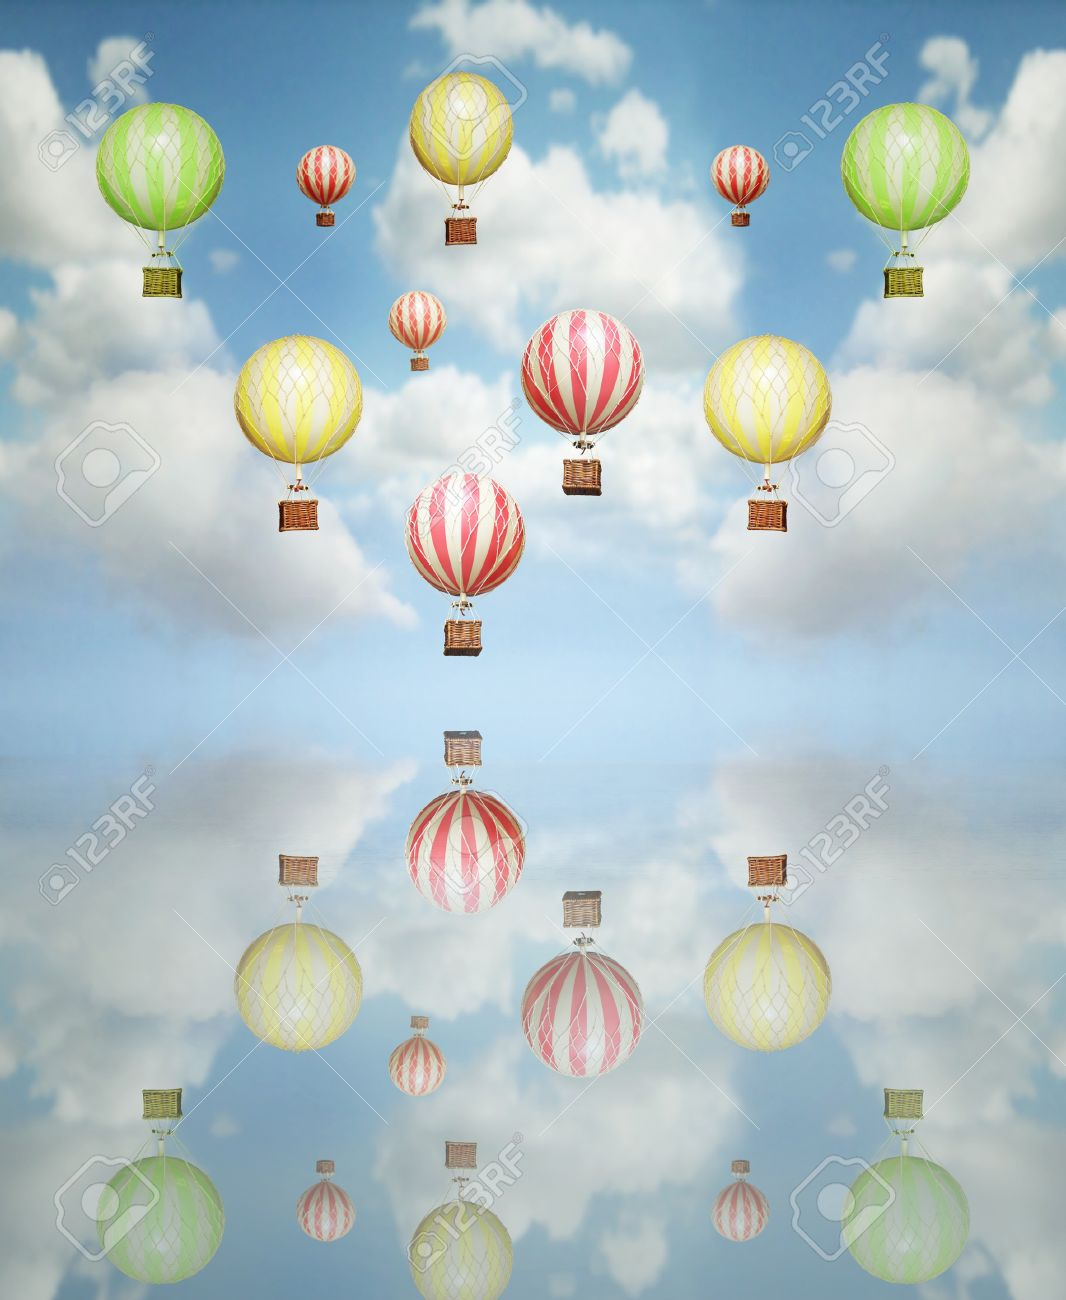 Beautiful abstract artistic background with many colorful hot air balloon in the sky with its reflection above - 16272048